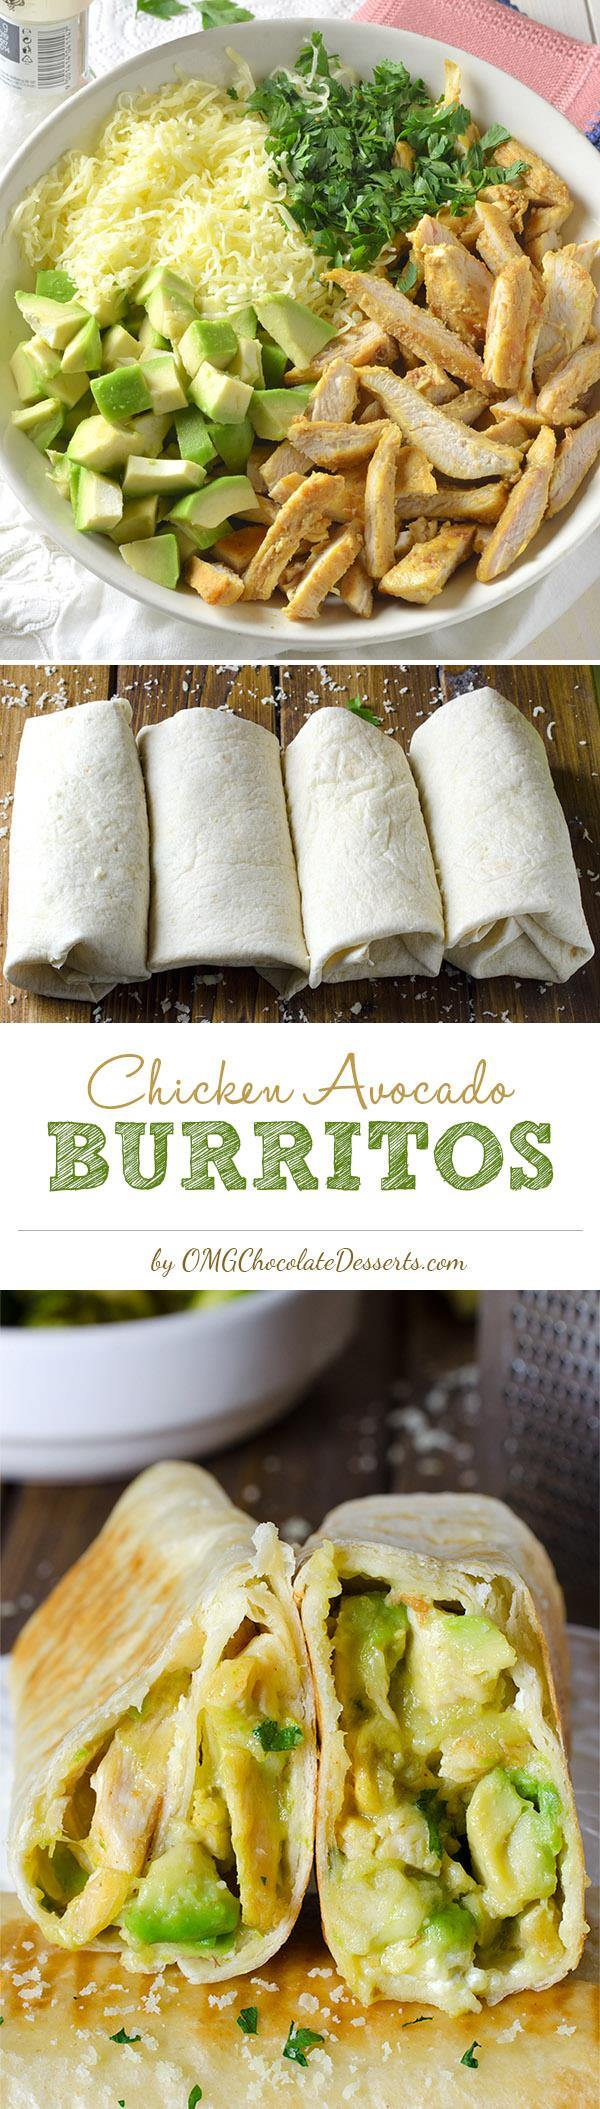 """If you are in a big hurry to prepare a beautiful lunch or dinner, maybe it's time for you to try the healthy and easy Chicken Avocado Burritos. I consider this a real """"trick up my sleeve"""" for situations like this."""